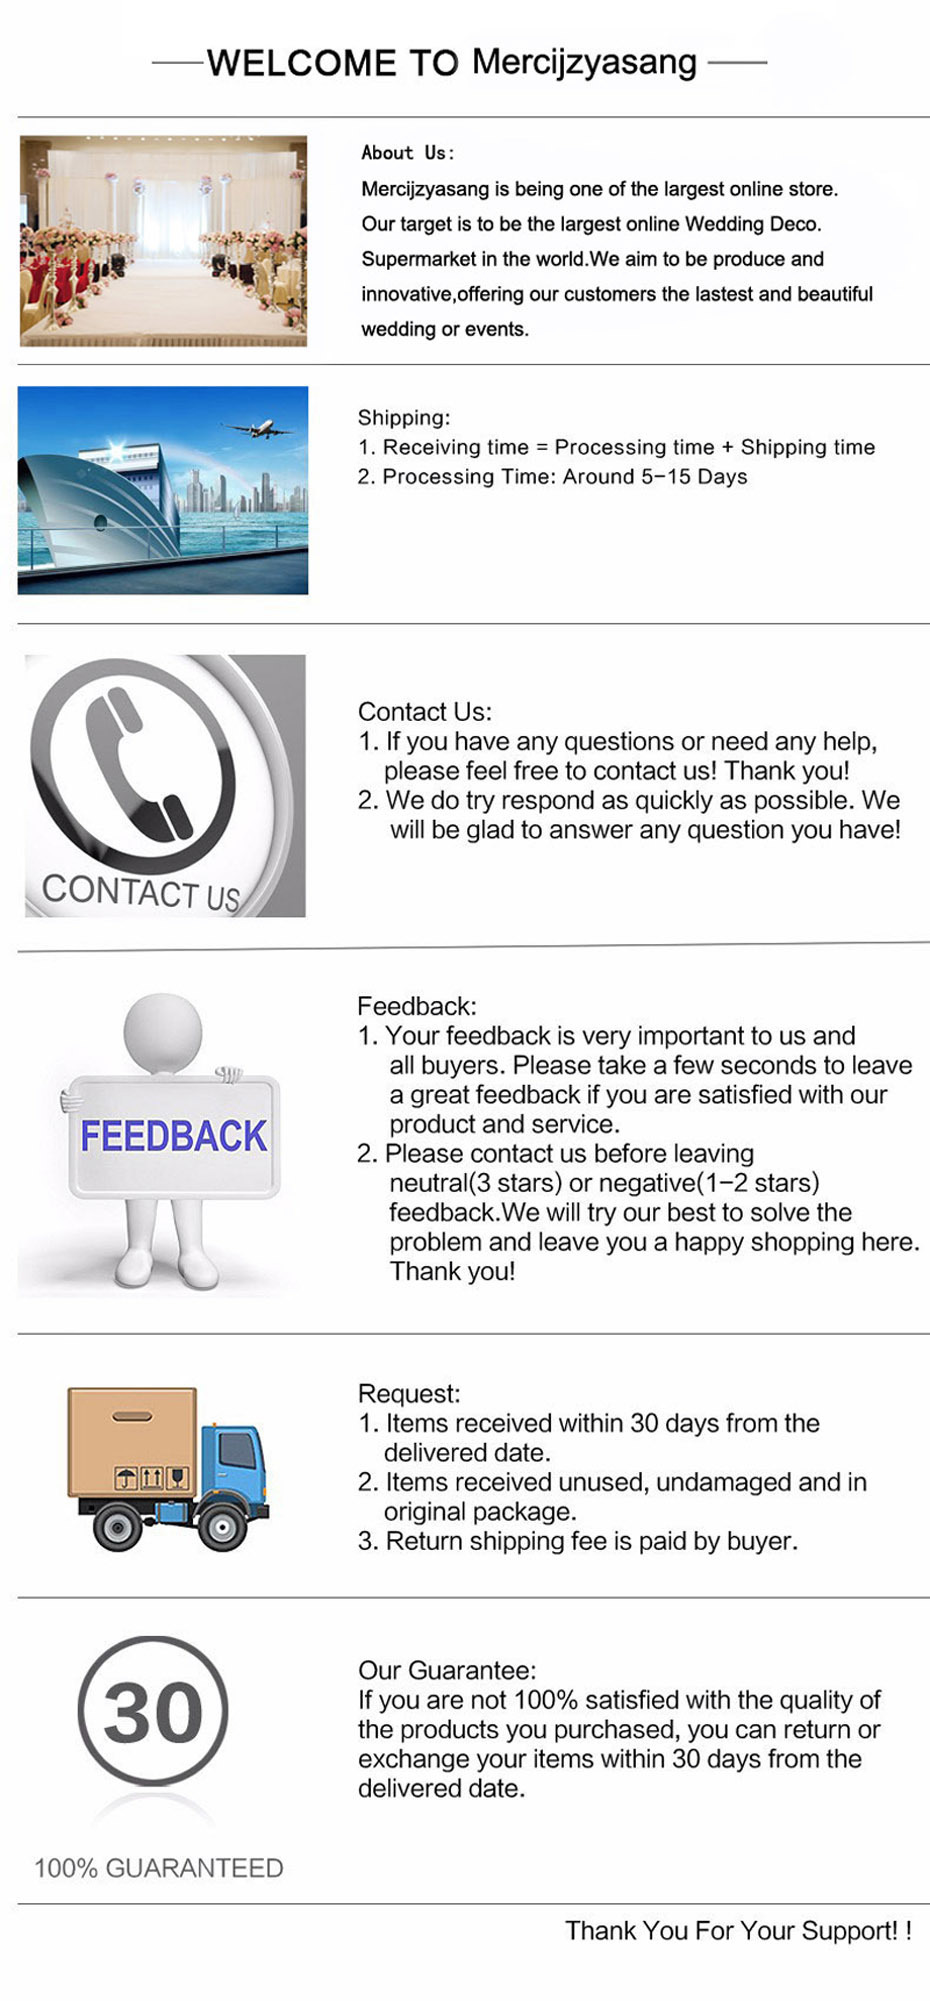 3361104a38 ... contact us immediately BEFORE you give us neutral or negative feedback